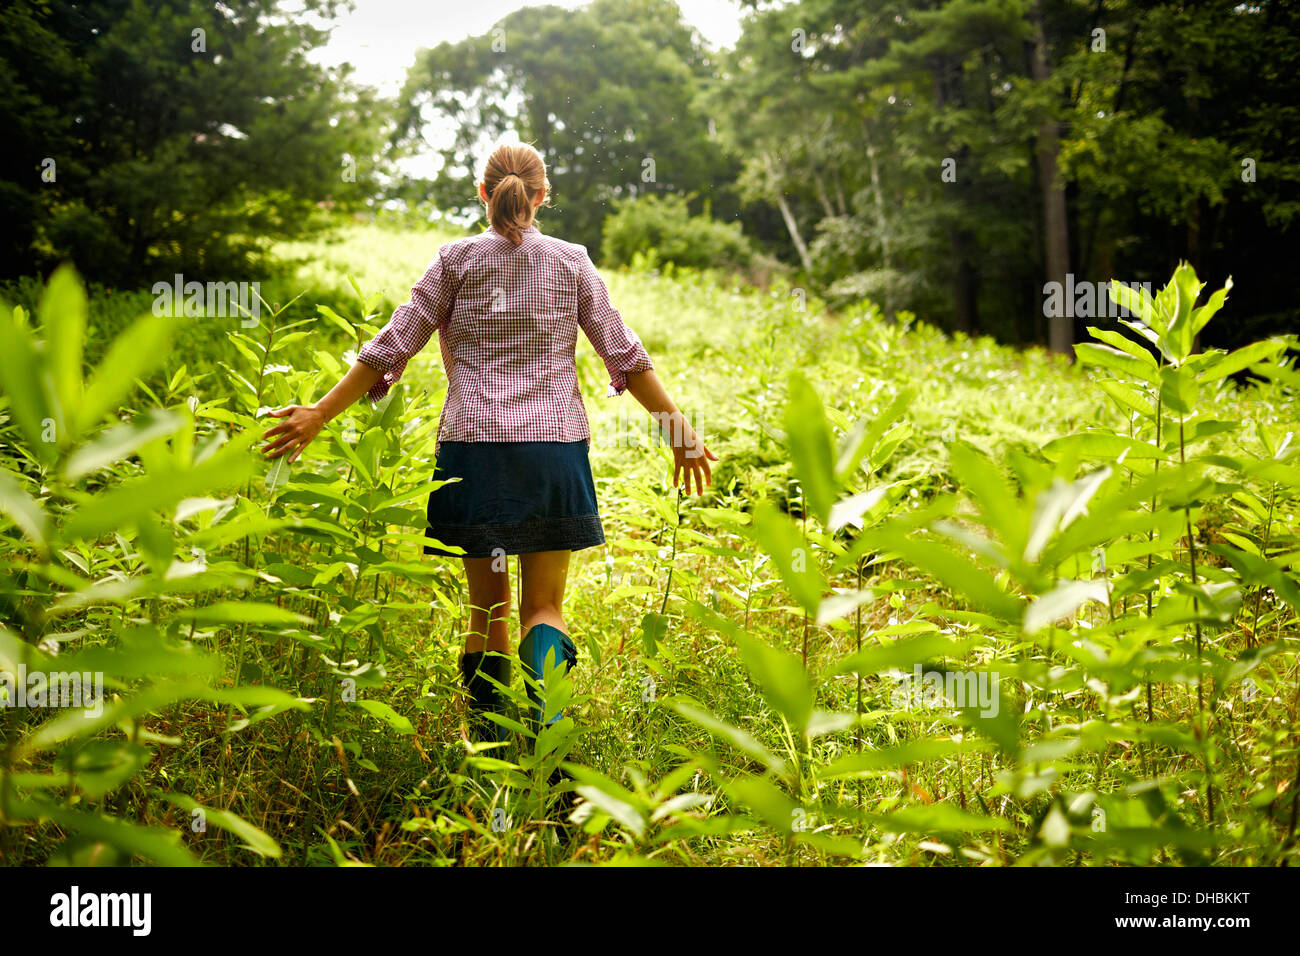 A woman walking through the undergrowth in woodland, with her arms brushing the tops of the wild plants. Stock Photo